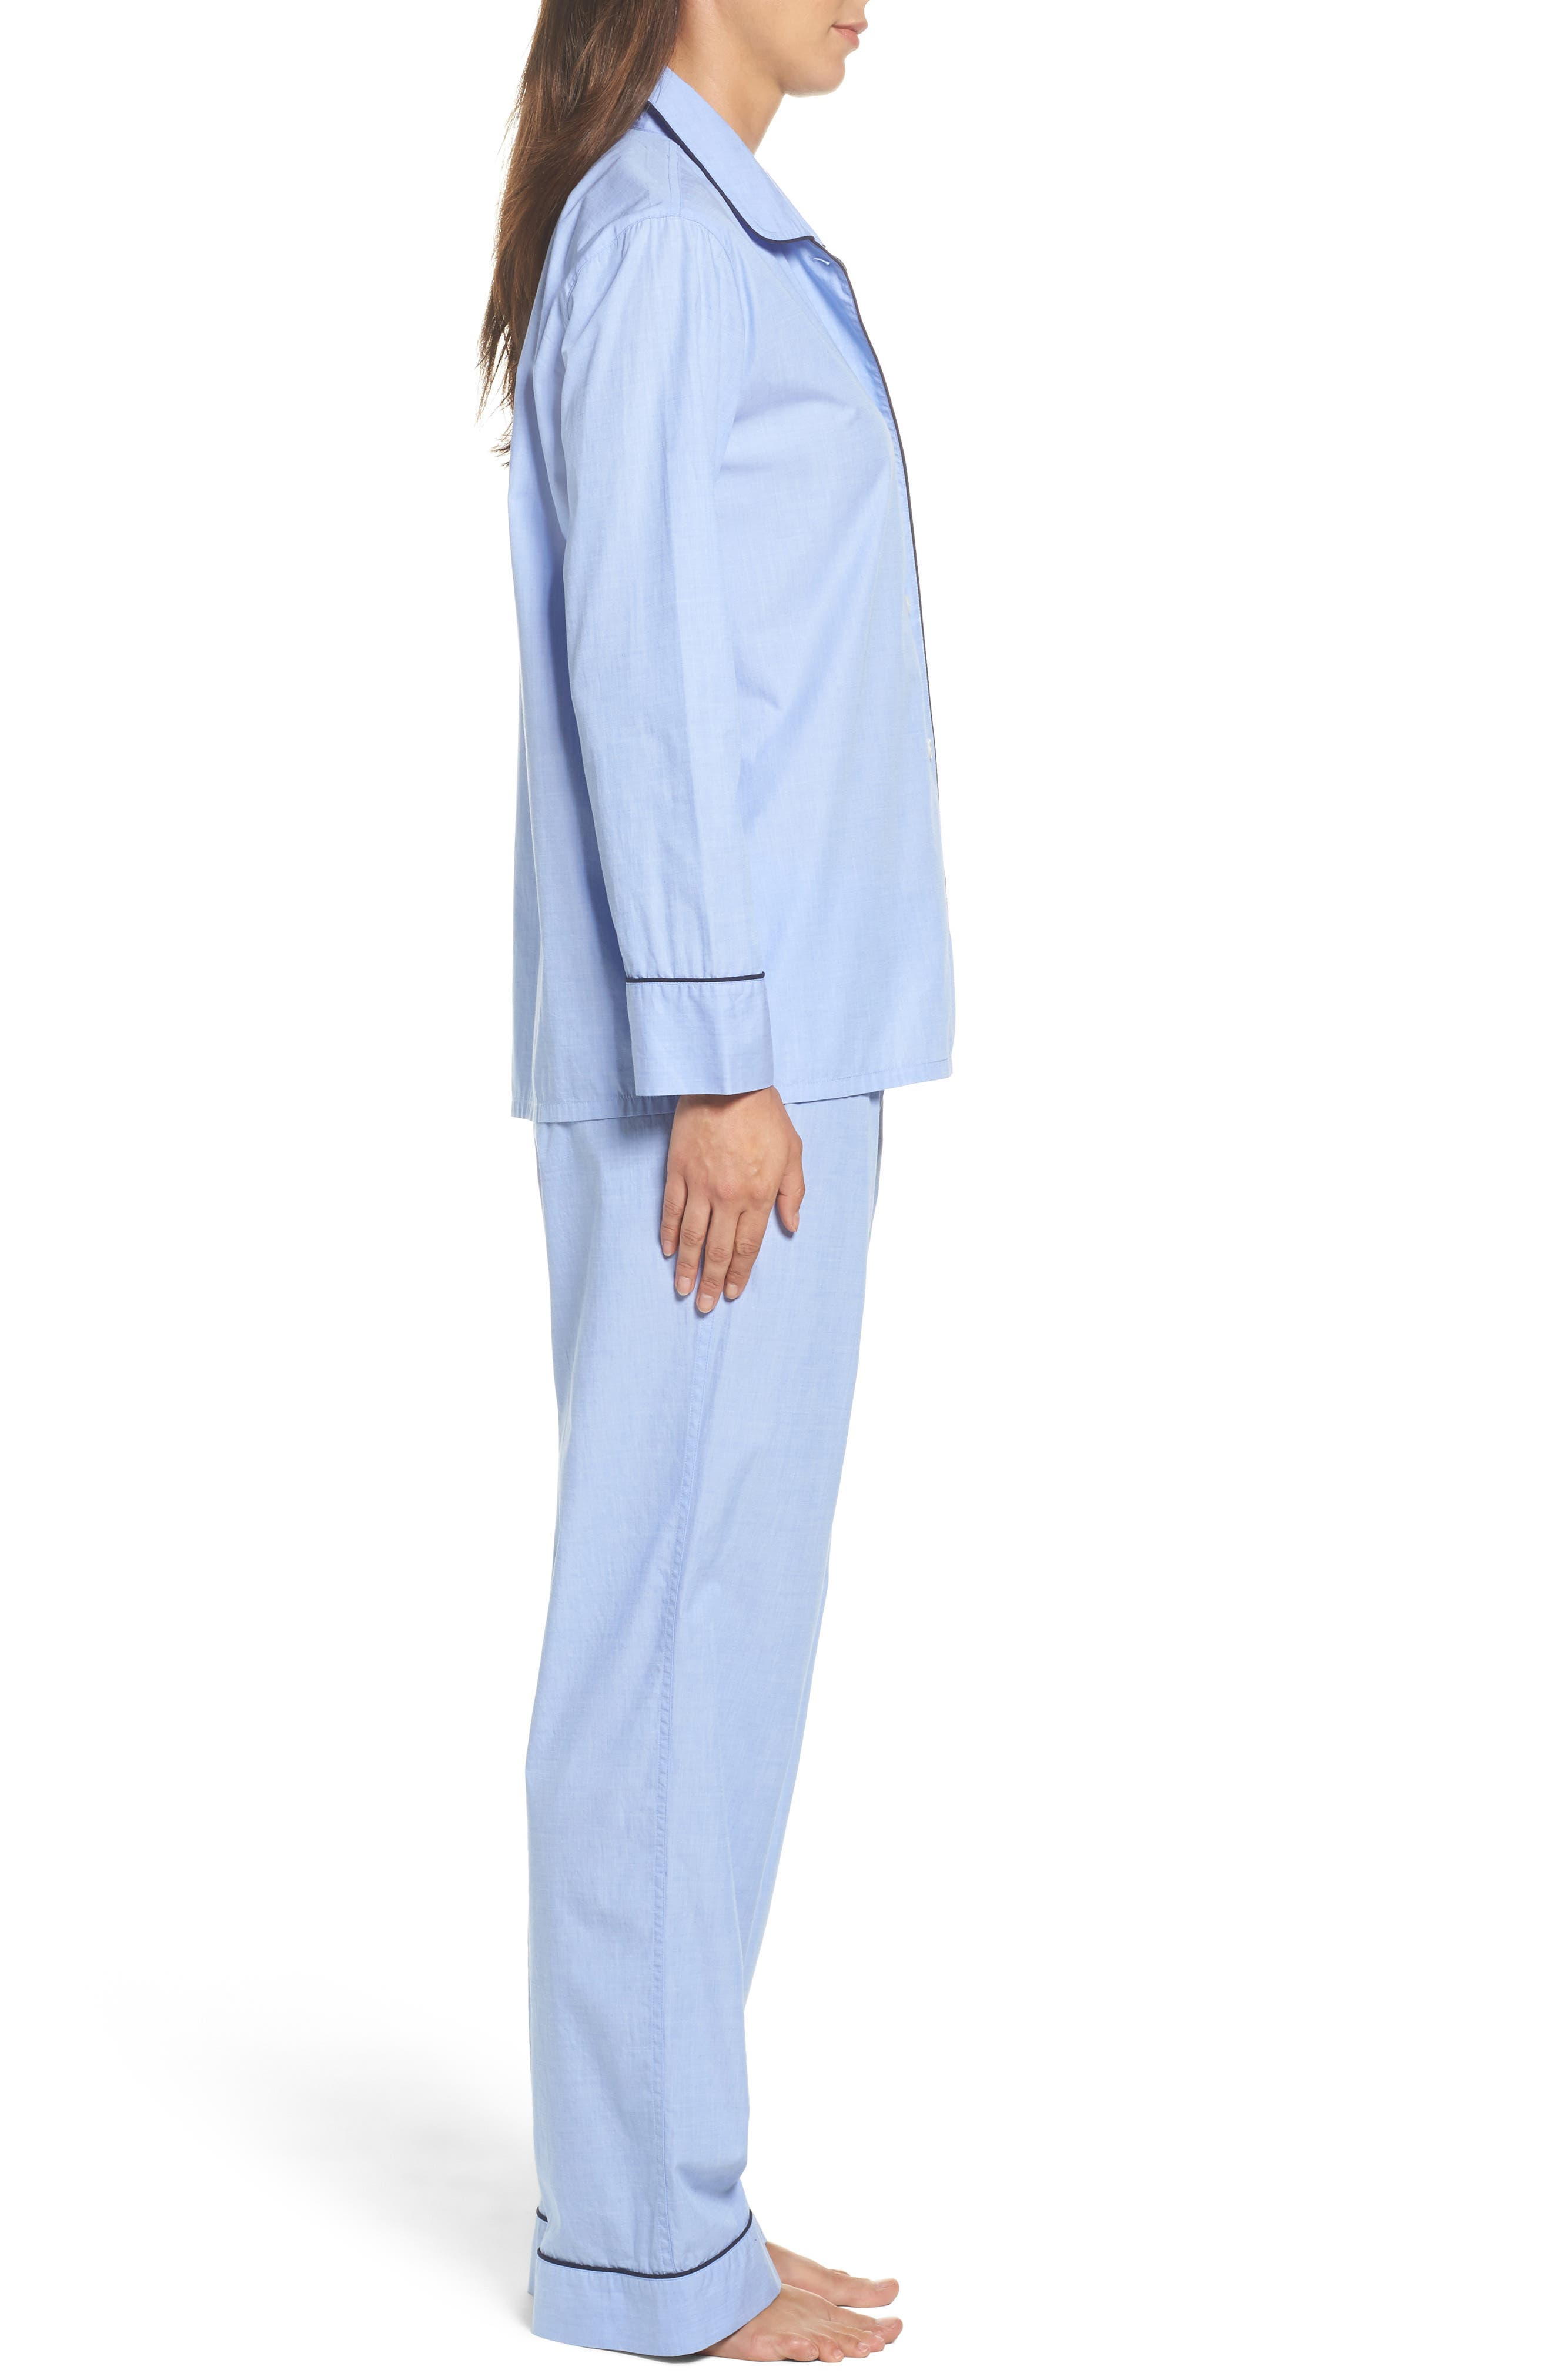 J.Crew Vintage Cotton Pajamas,                             Alternate thumbnail 3, color,                             Hydrangea